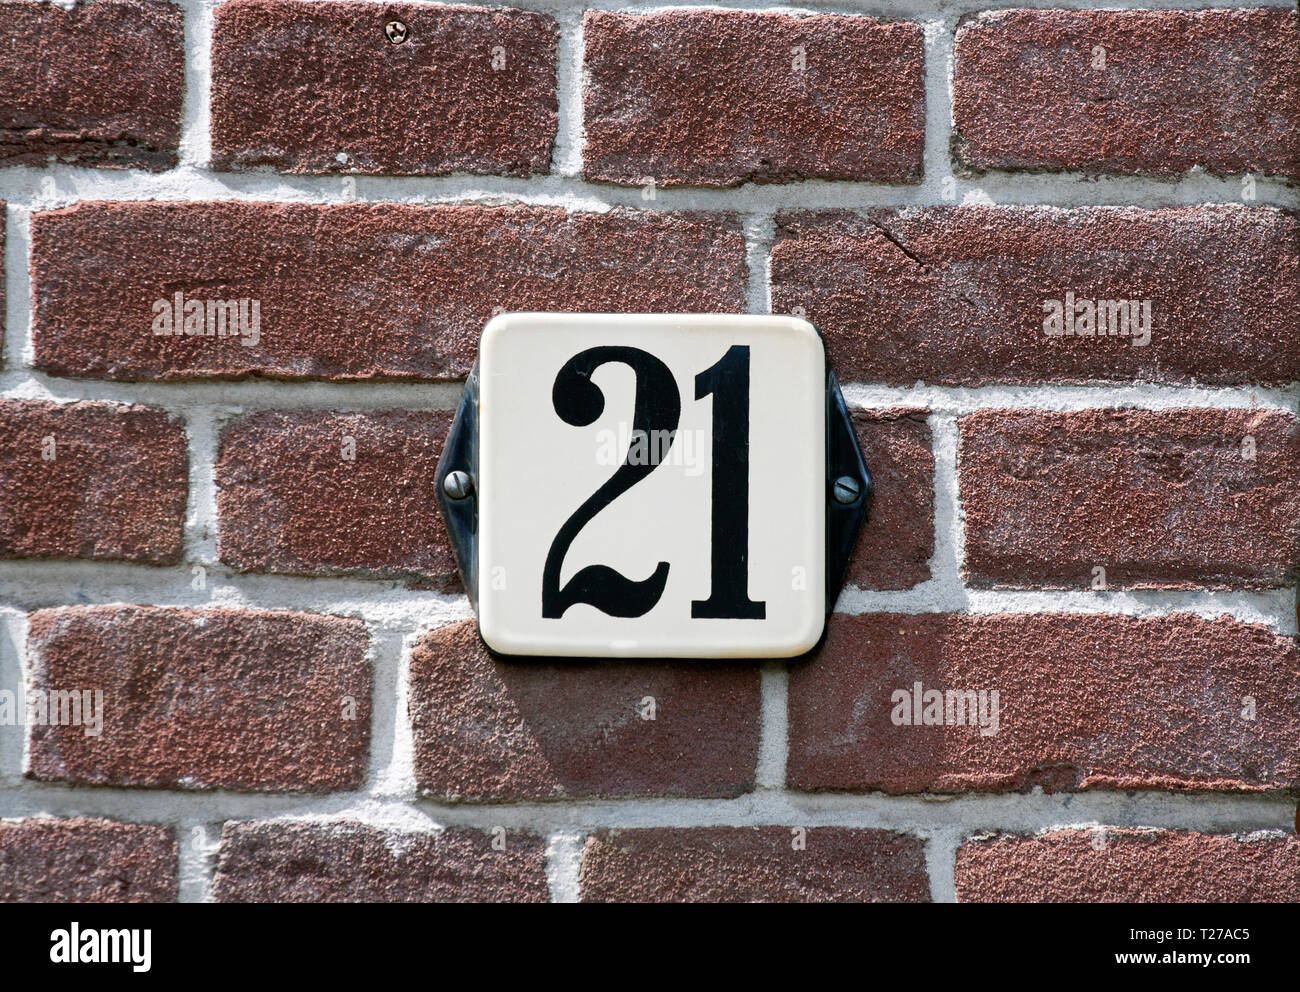 House number plate 21 screwed onto a brick wall - Stock Image